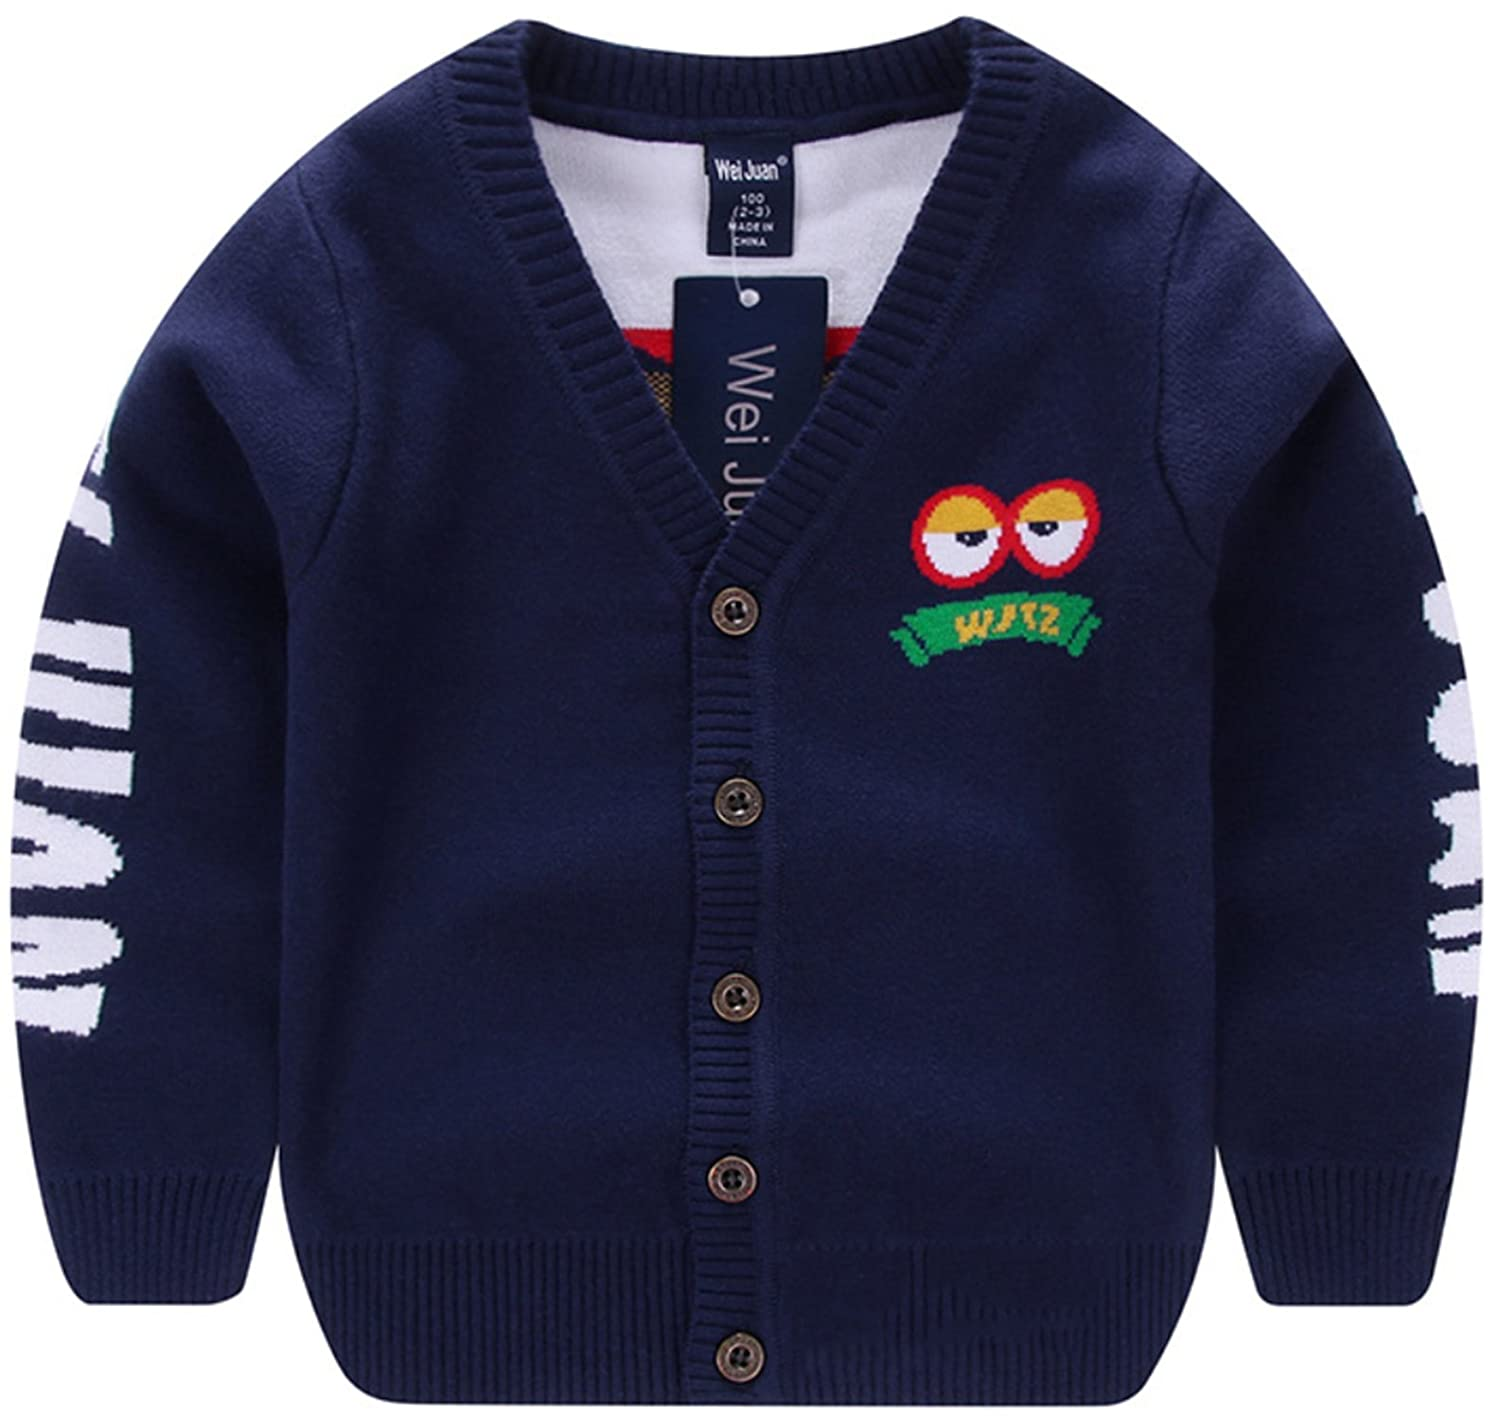 AUIE SAOSA Little Boys Winter Double Cotton Knit Cartoon V Neck Warm Cardigan Sweater